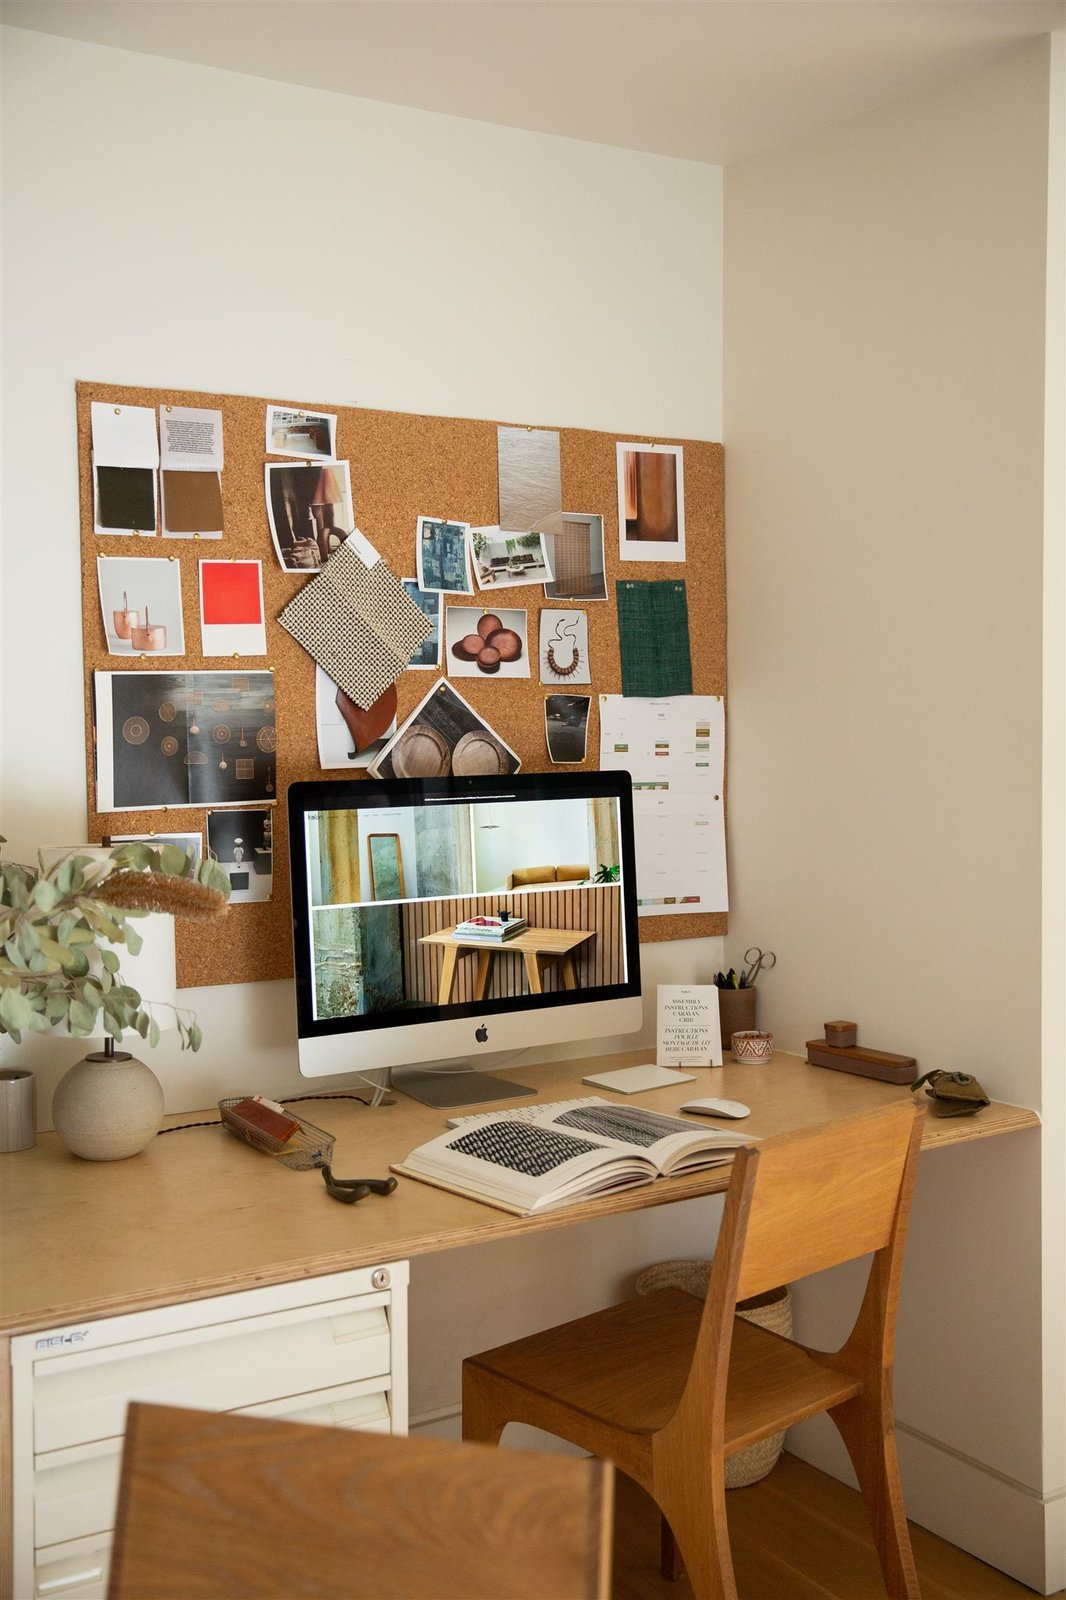 Working from home is old hat for Kalon founder and creative director Michaele Simmering whose had an in-home studio since she launched her business.